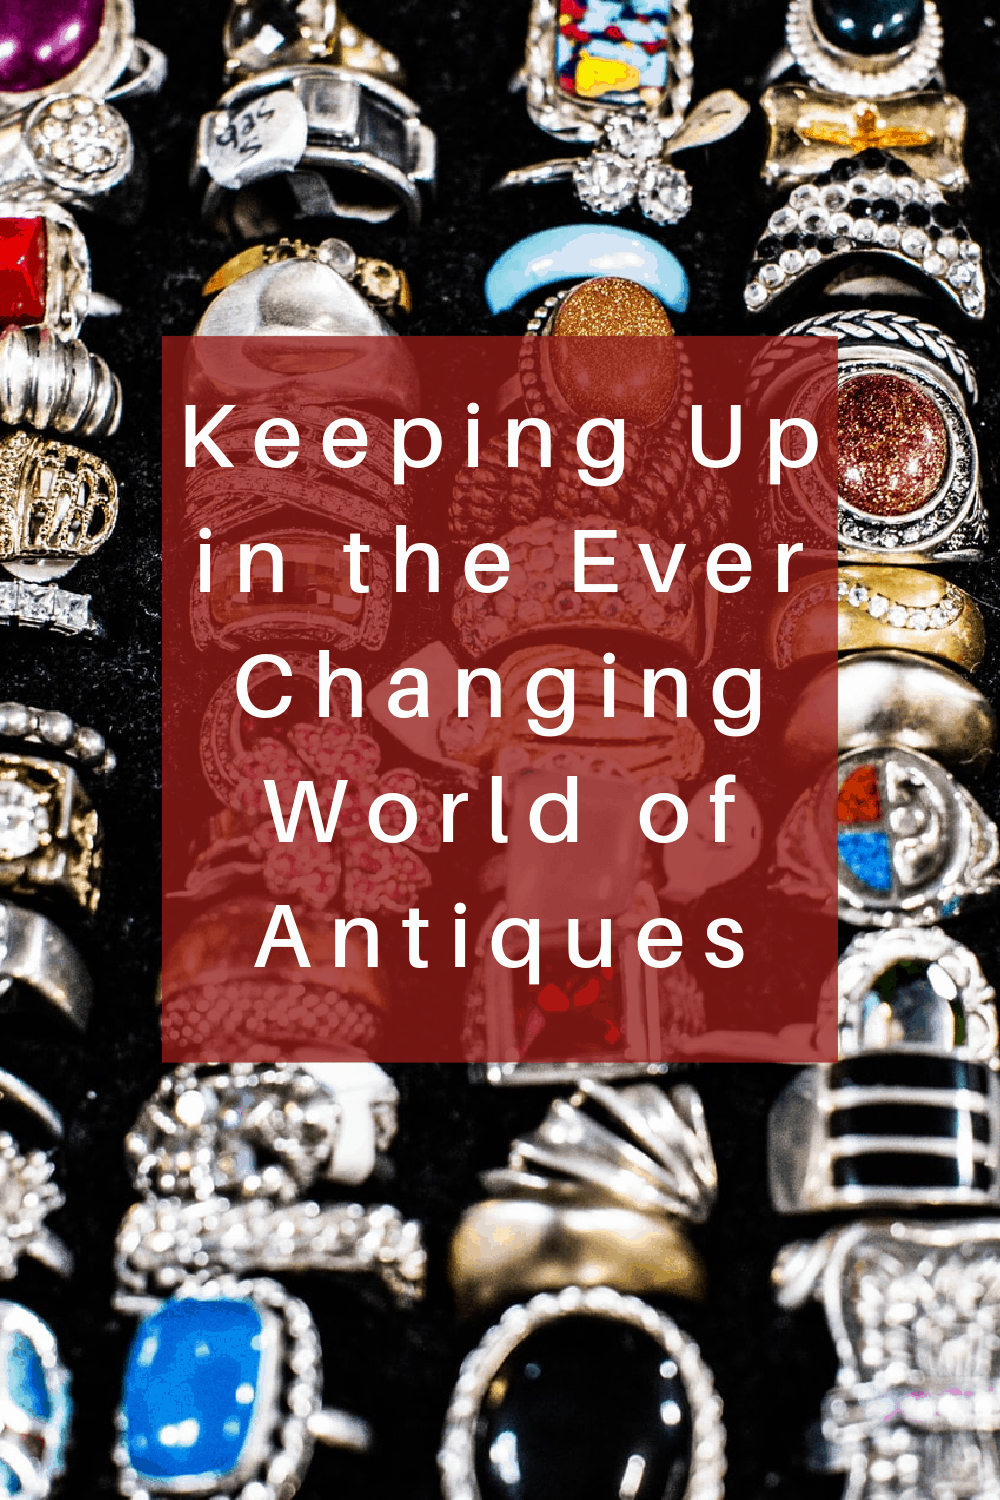 Keeping Up in the Ever-Changing World of Antiques